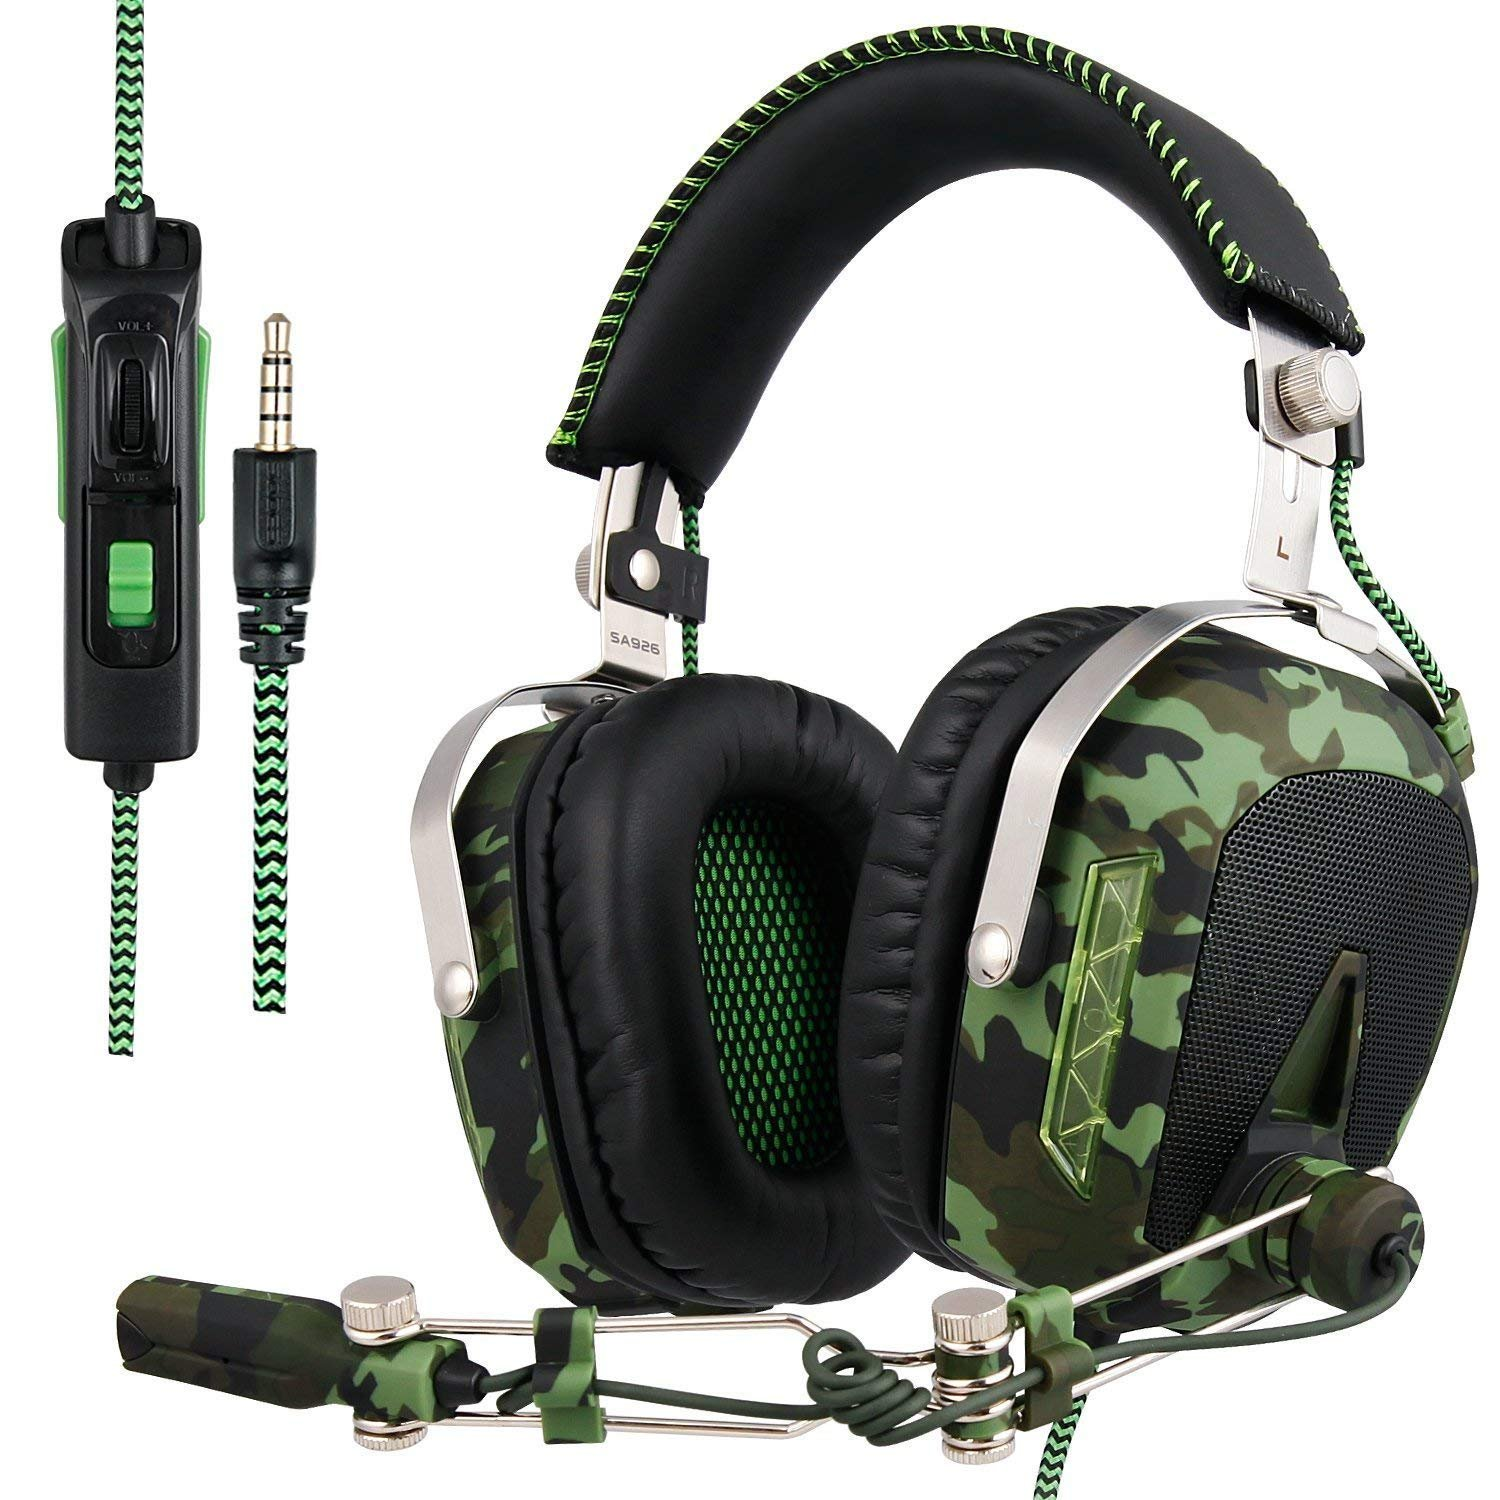 SADES SA926T Stereo Gaming Headset for PS4 New Xbox One, Bass Over-Ear Headphones with Microphone and In-line Volume Control for Laptop, PC, Mac, iPad, Computer, Smart phones(Camouflage)